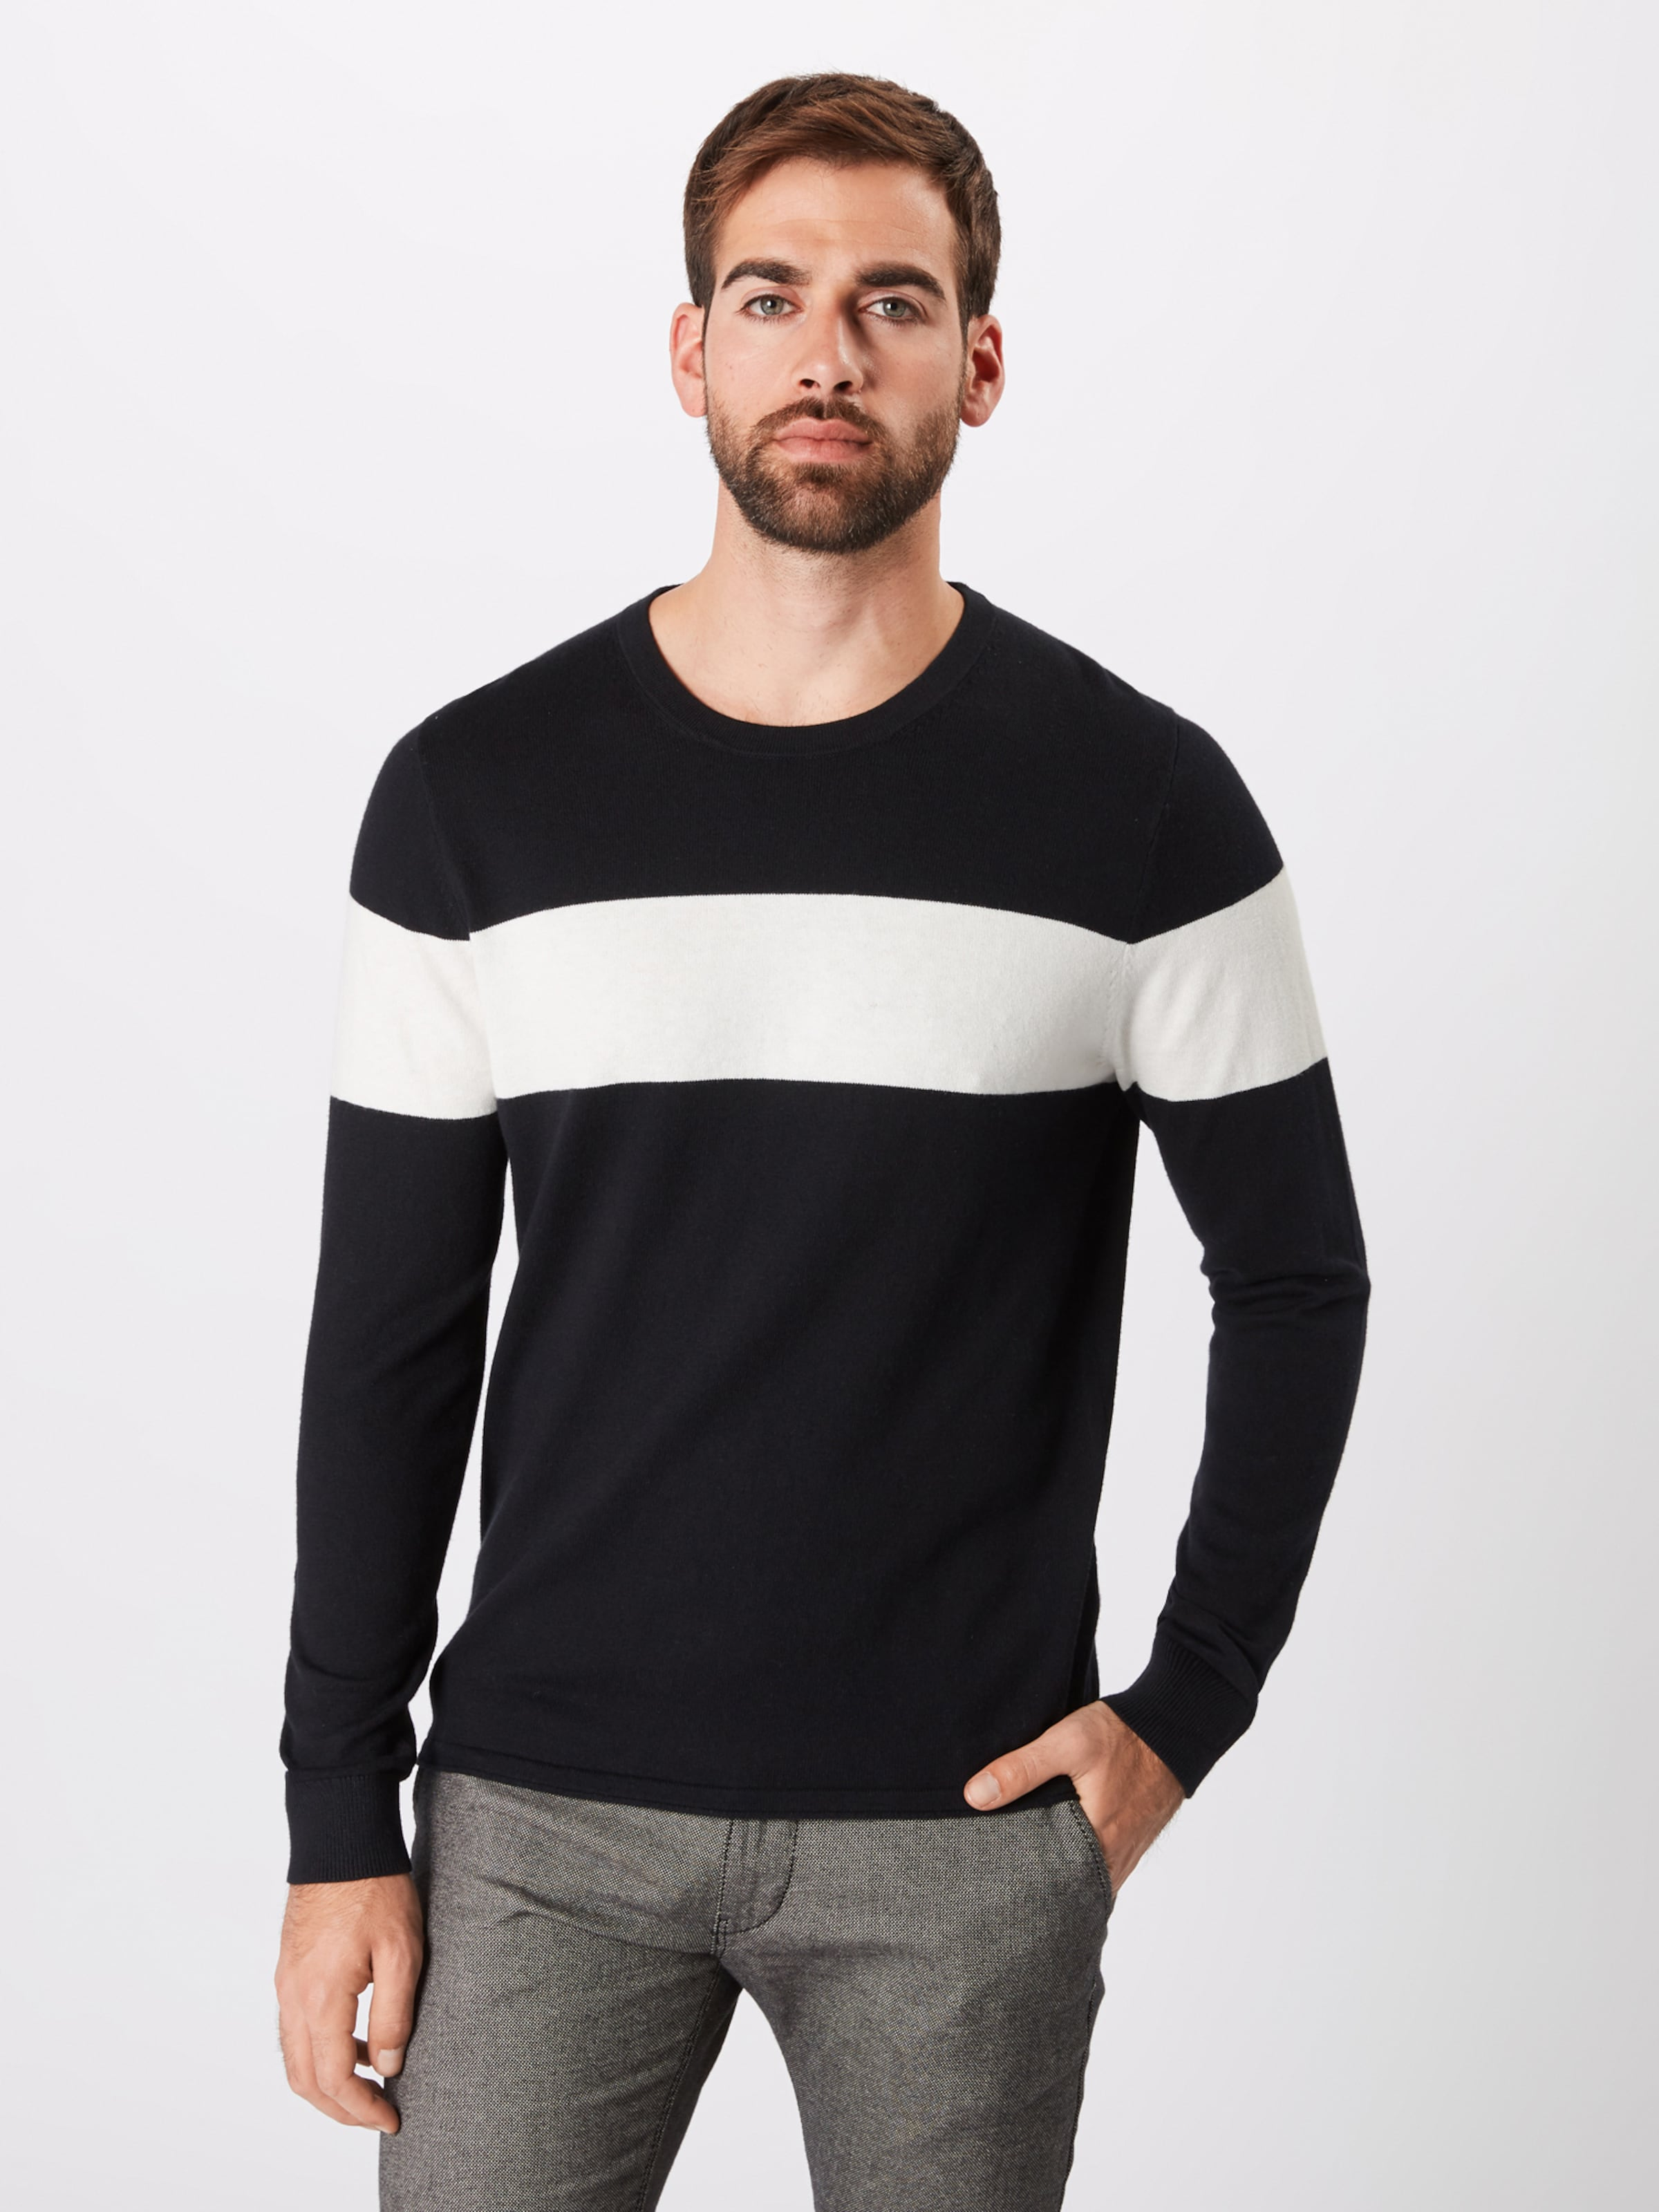 'clin' Pullover 'clin' Drykorn In Pullover In Drykorn Pullover Drykorn In 'clin' SchwarzWeiß SchwarzWeiß vwOyNP8n0m